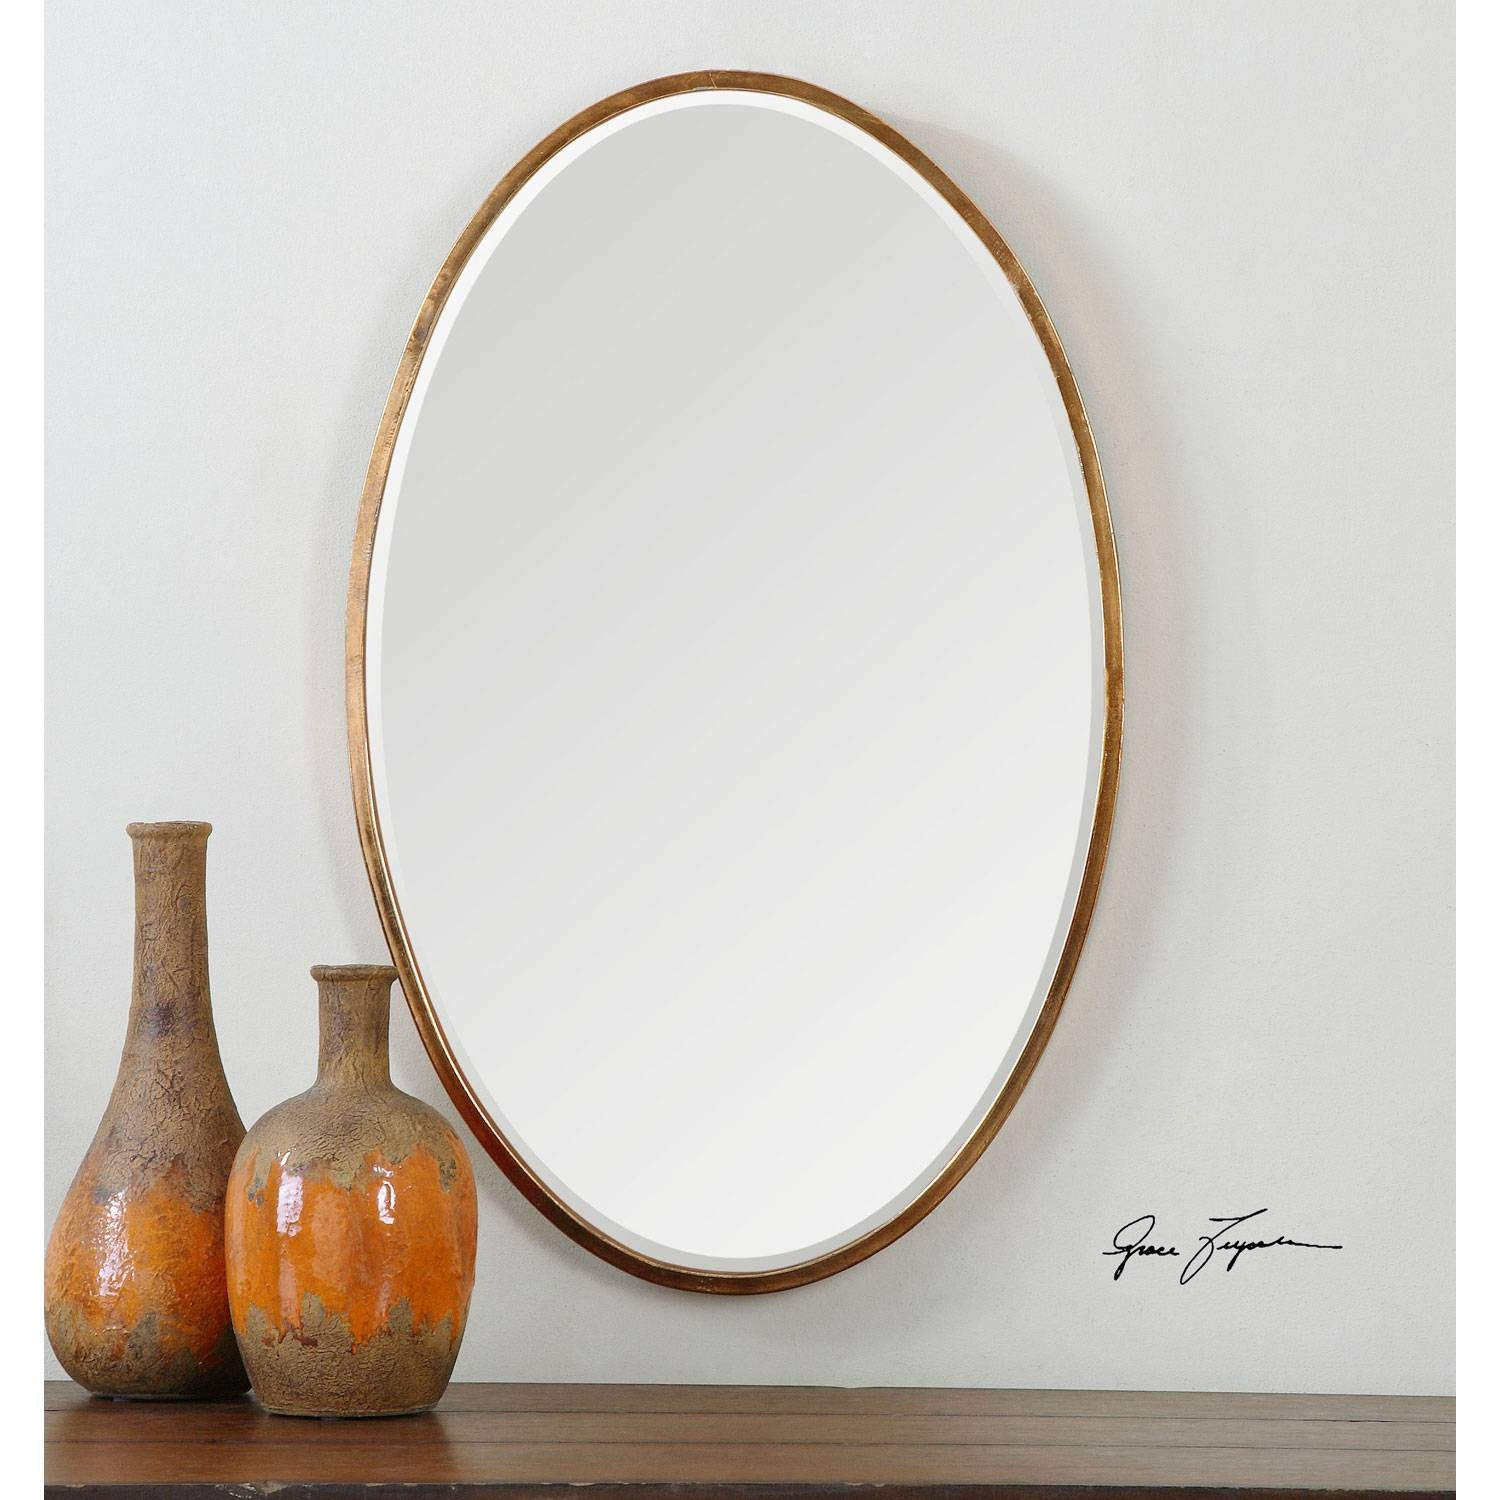 Herleva Oval Antique Gold Oval Mirror Uttermost Wall Mirror within Oval Wall Mirrors (Image 11 of 25)